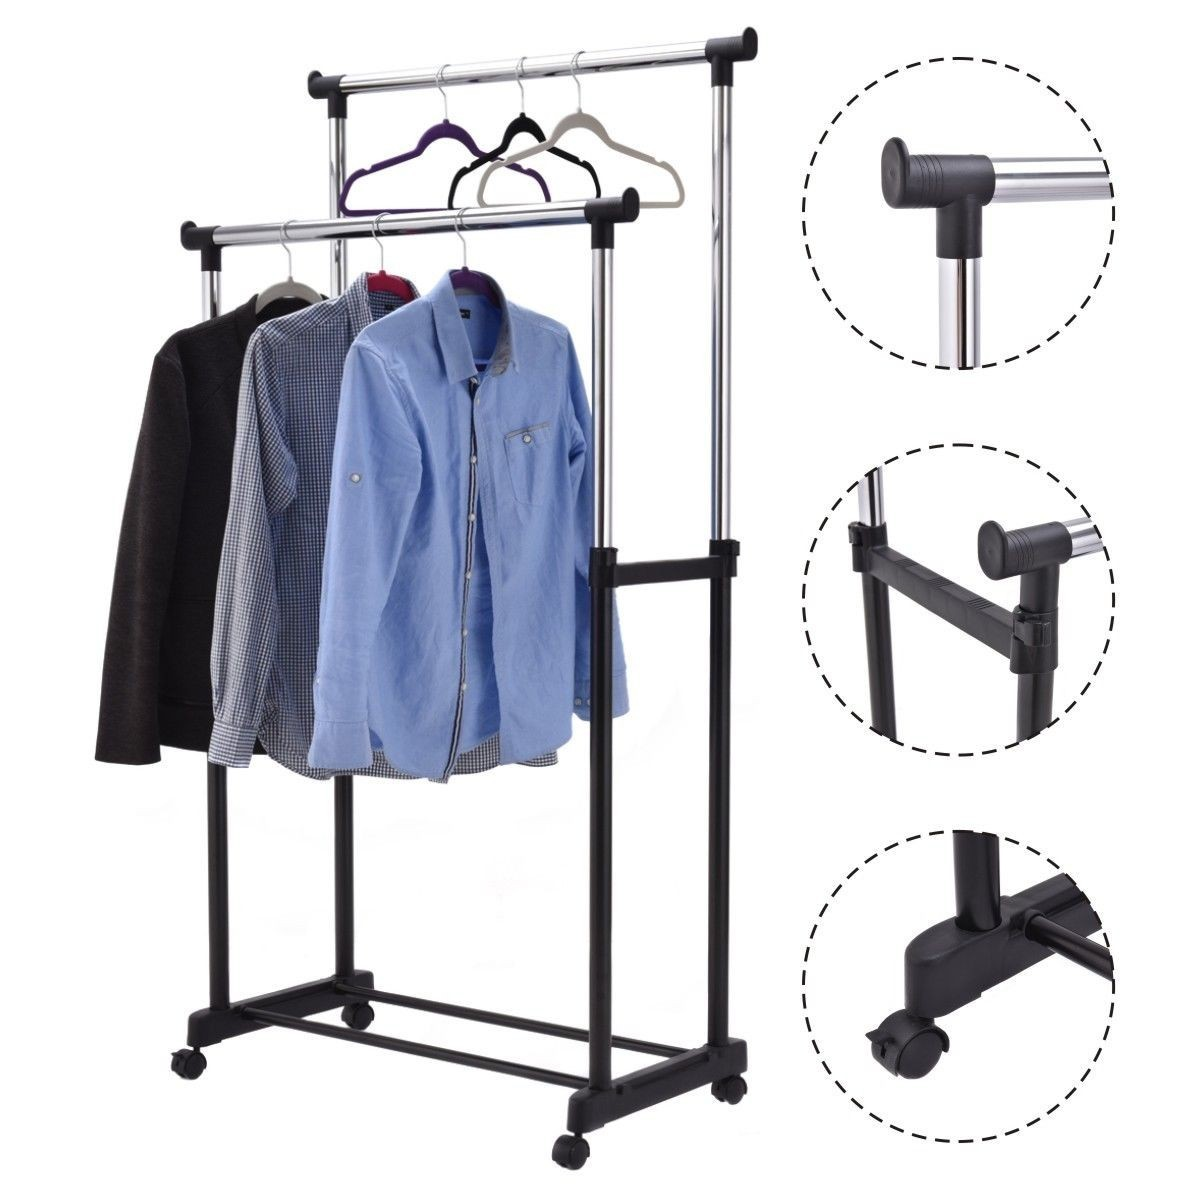 Double Rail Adjustable Garment Rack Rolling Clothes Hanger Heavy Duty Portable